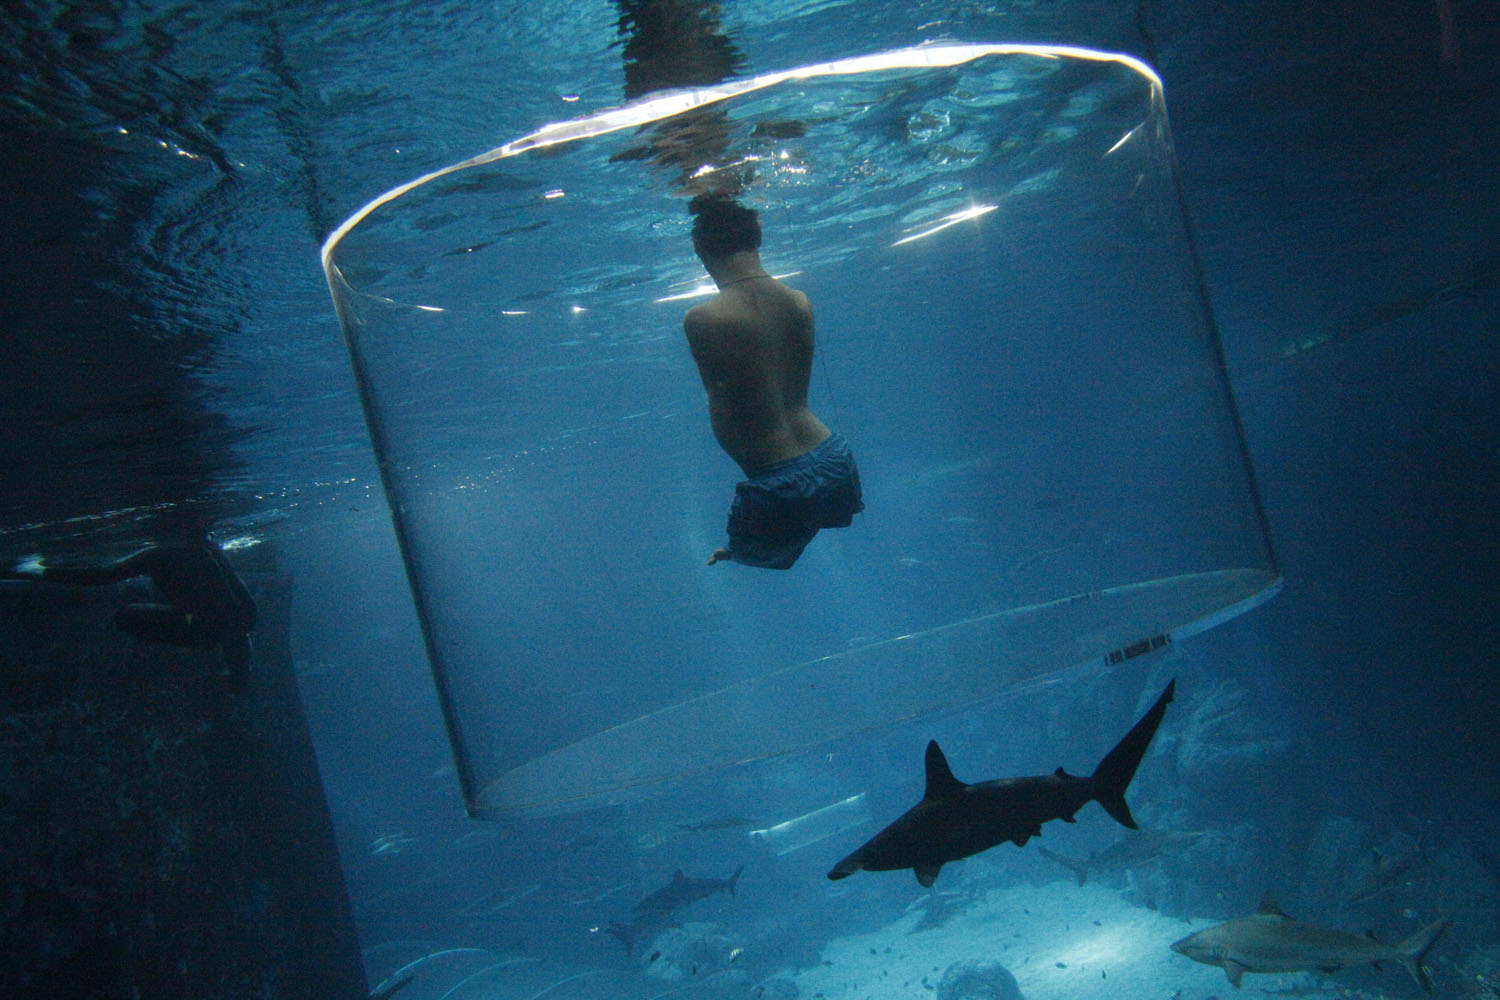 Sept. 5, 2013. Nick Vujicic, an Australian motivational speaker who was born without limbs, swims with sharks at the Marine Life Park in Singapore.